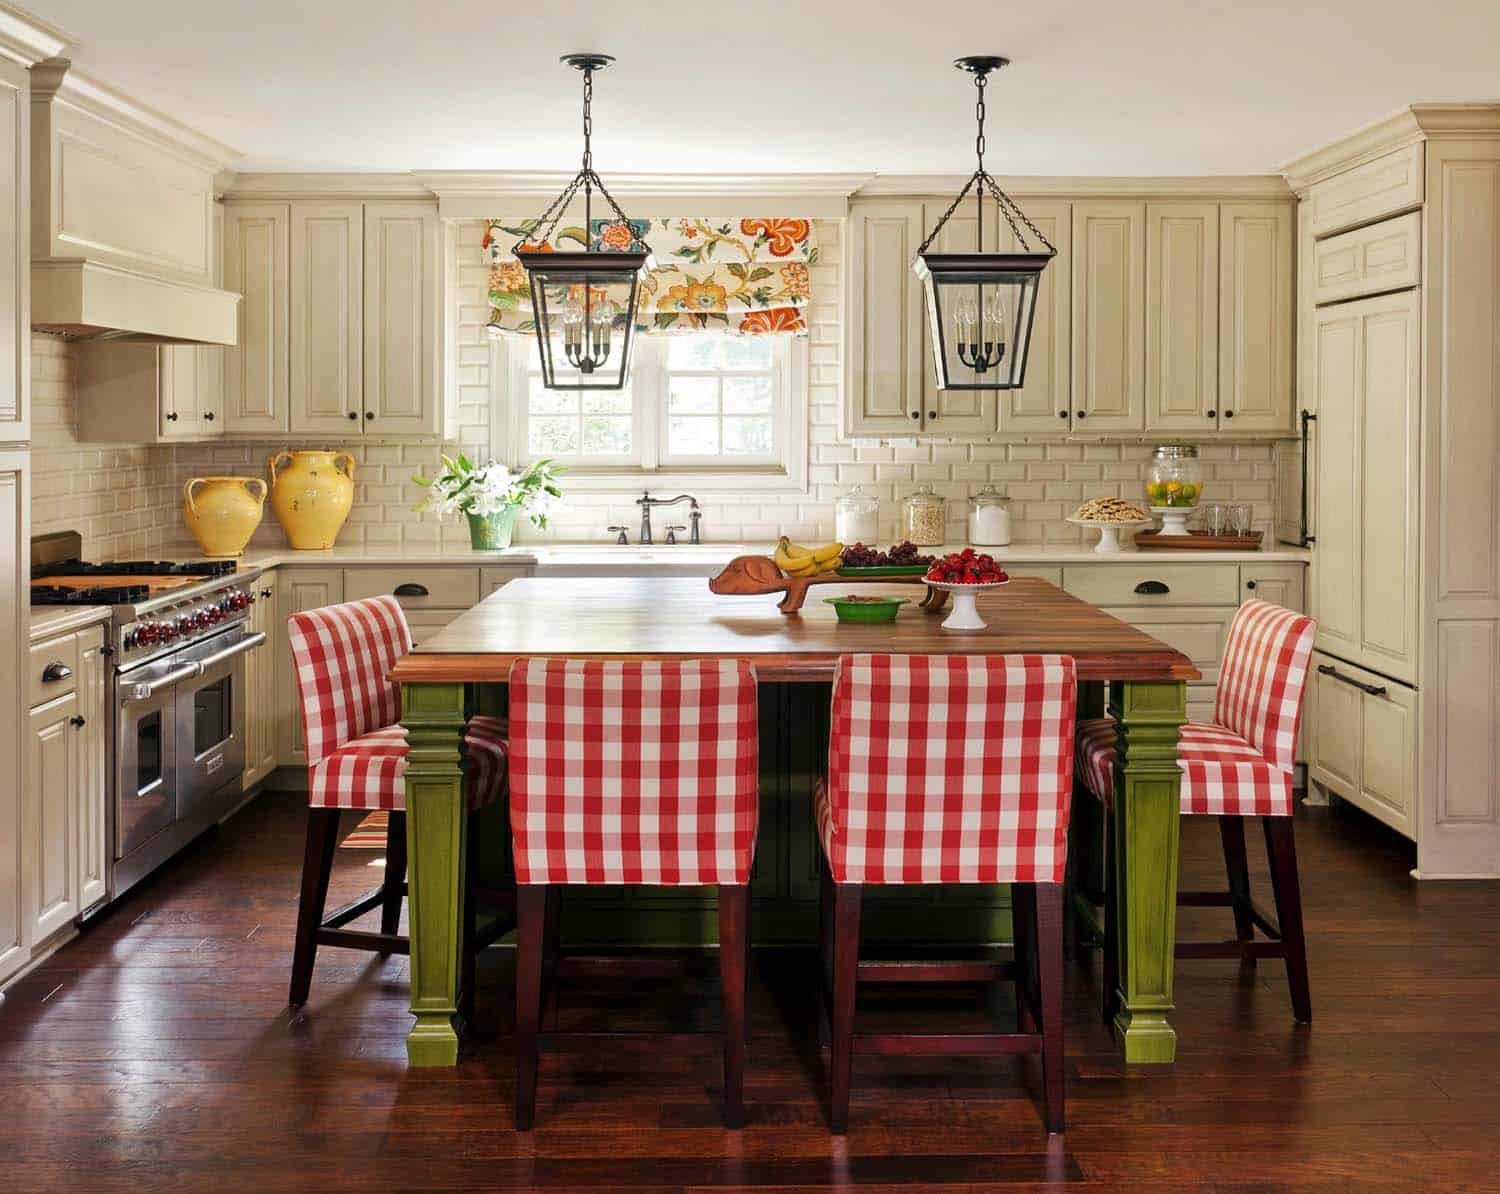 33 Amazing country-chic kitchens brimming with character